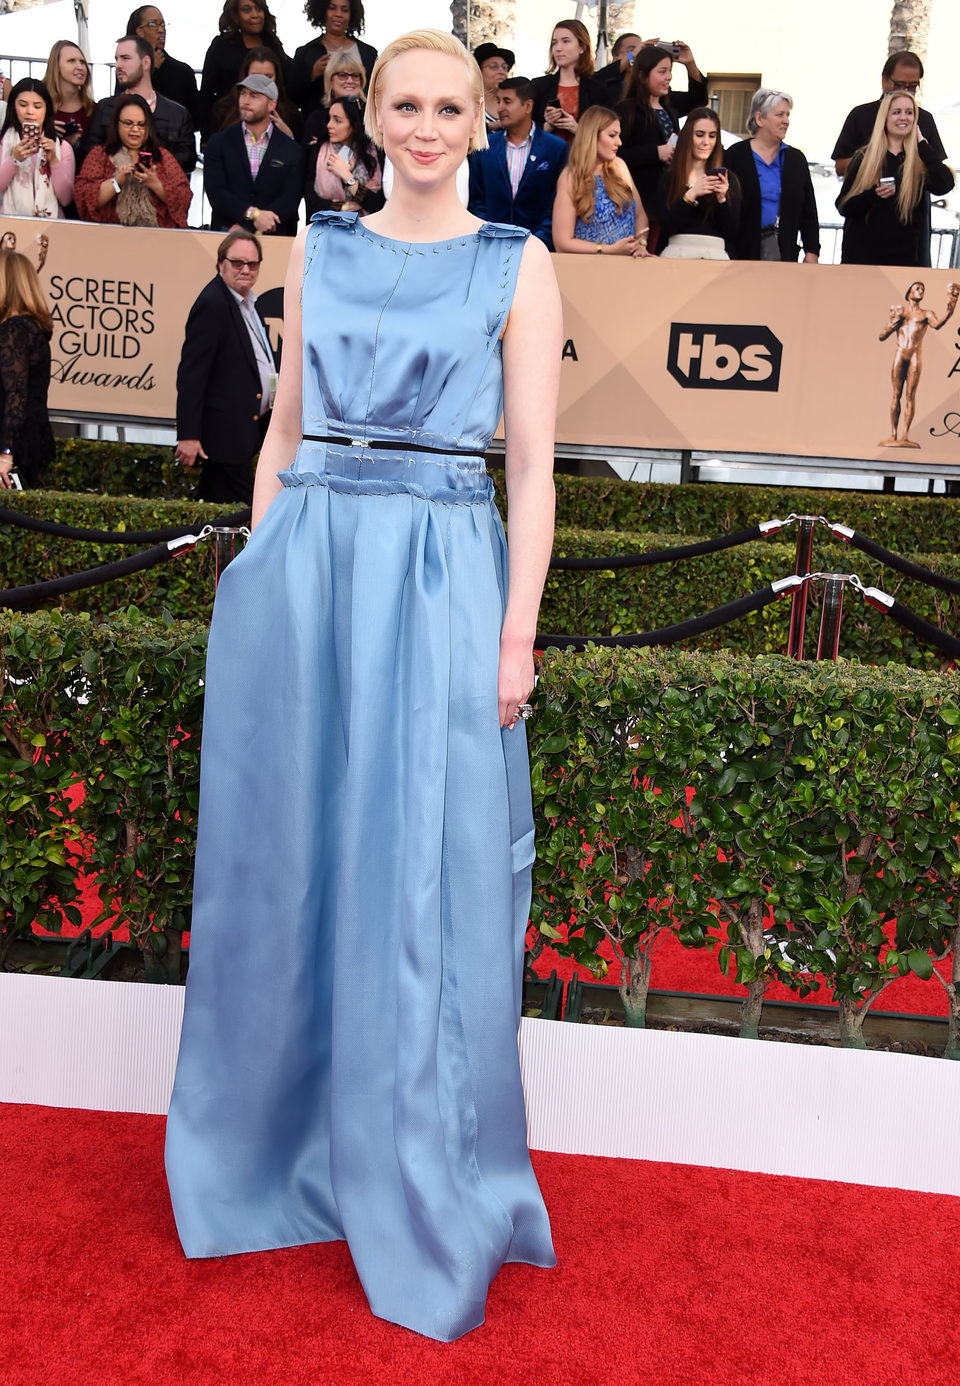 Gwendoline Christie at the SAG Awards 2016 red carpet